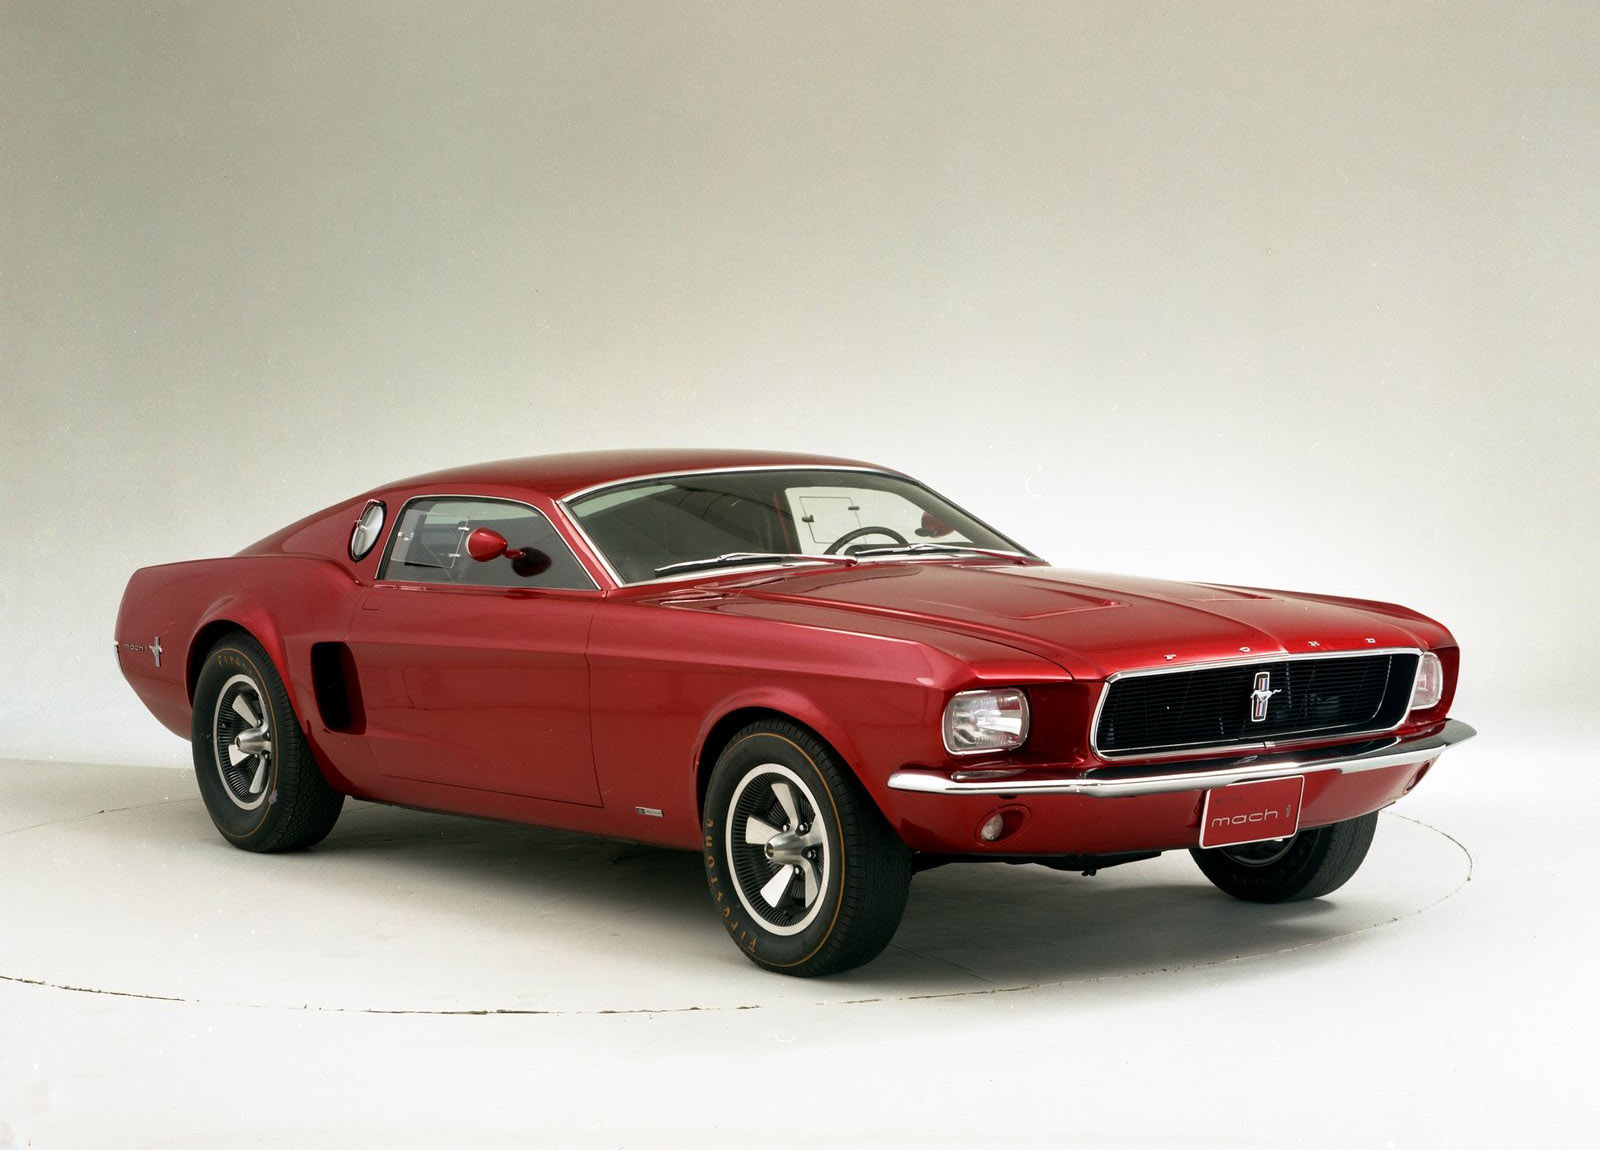 Ford Mustang Mach 1 Concept photo #1